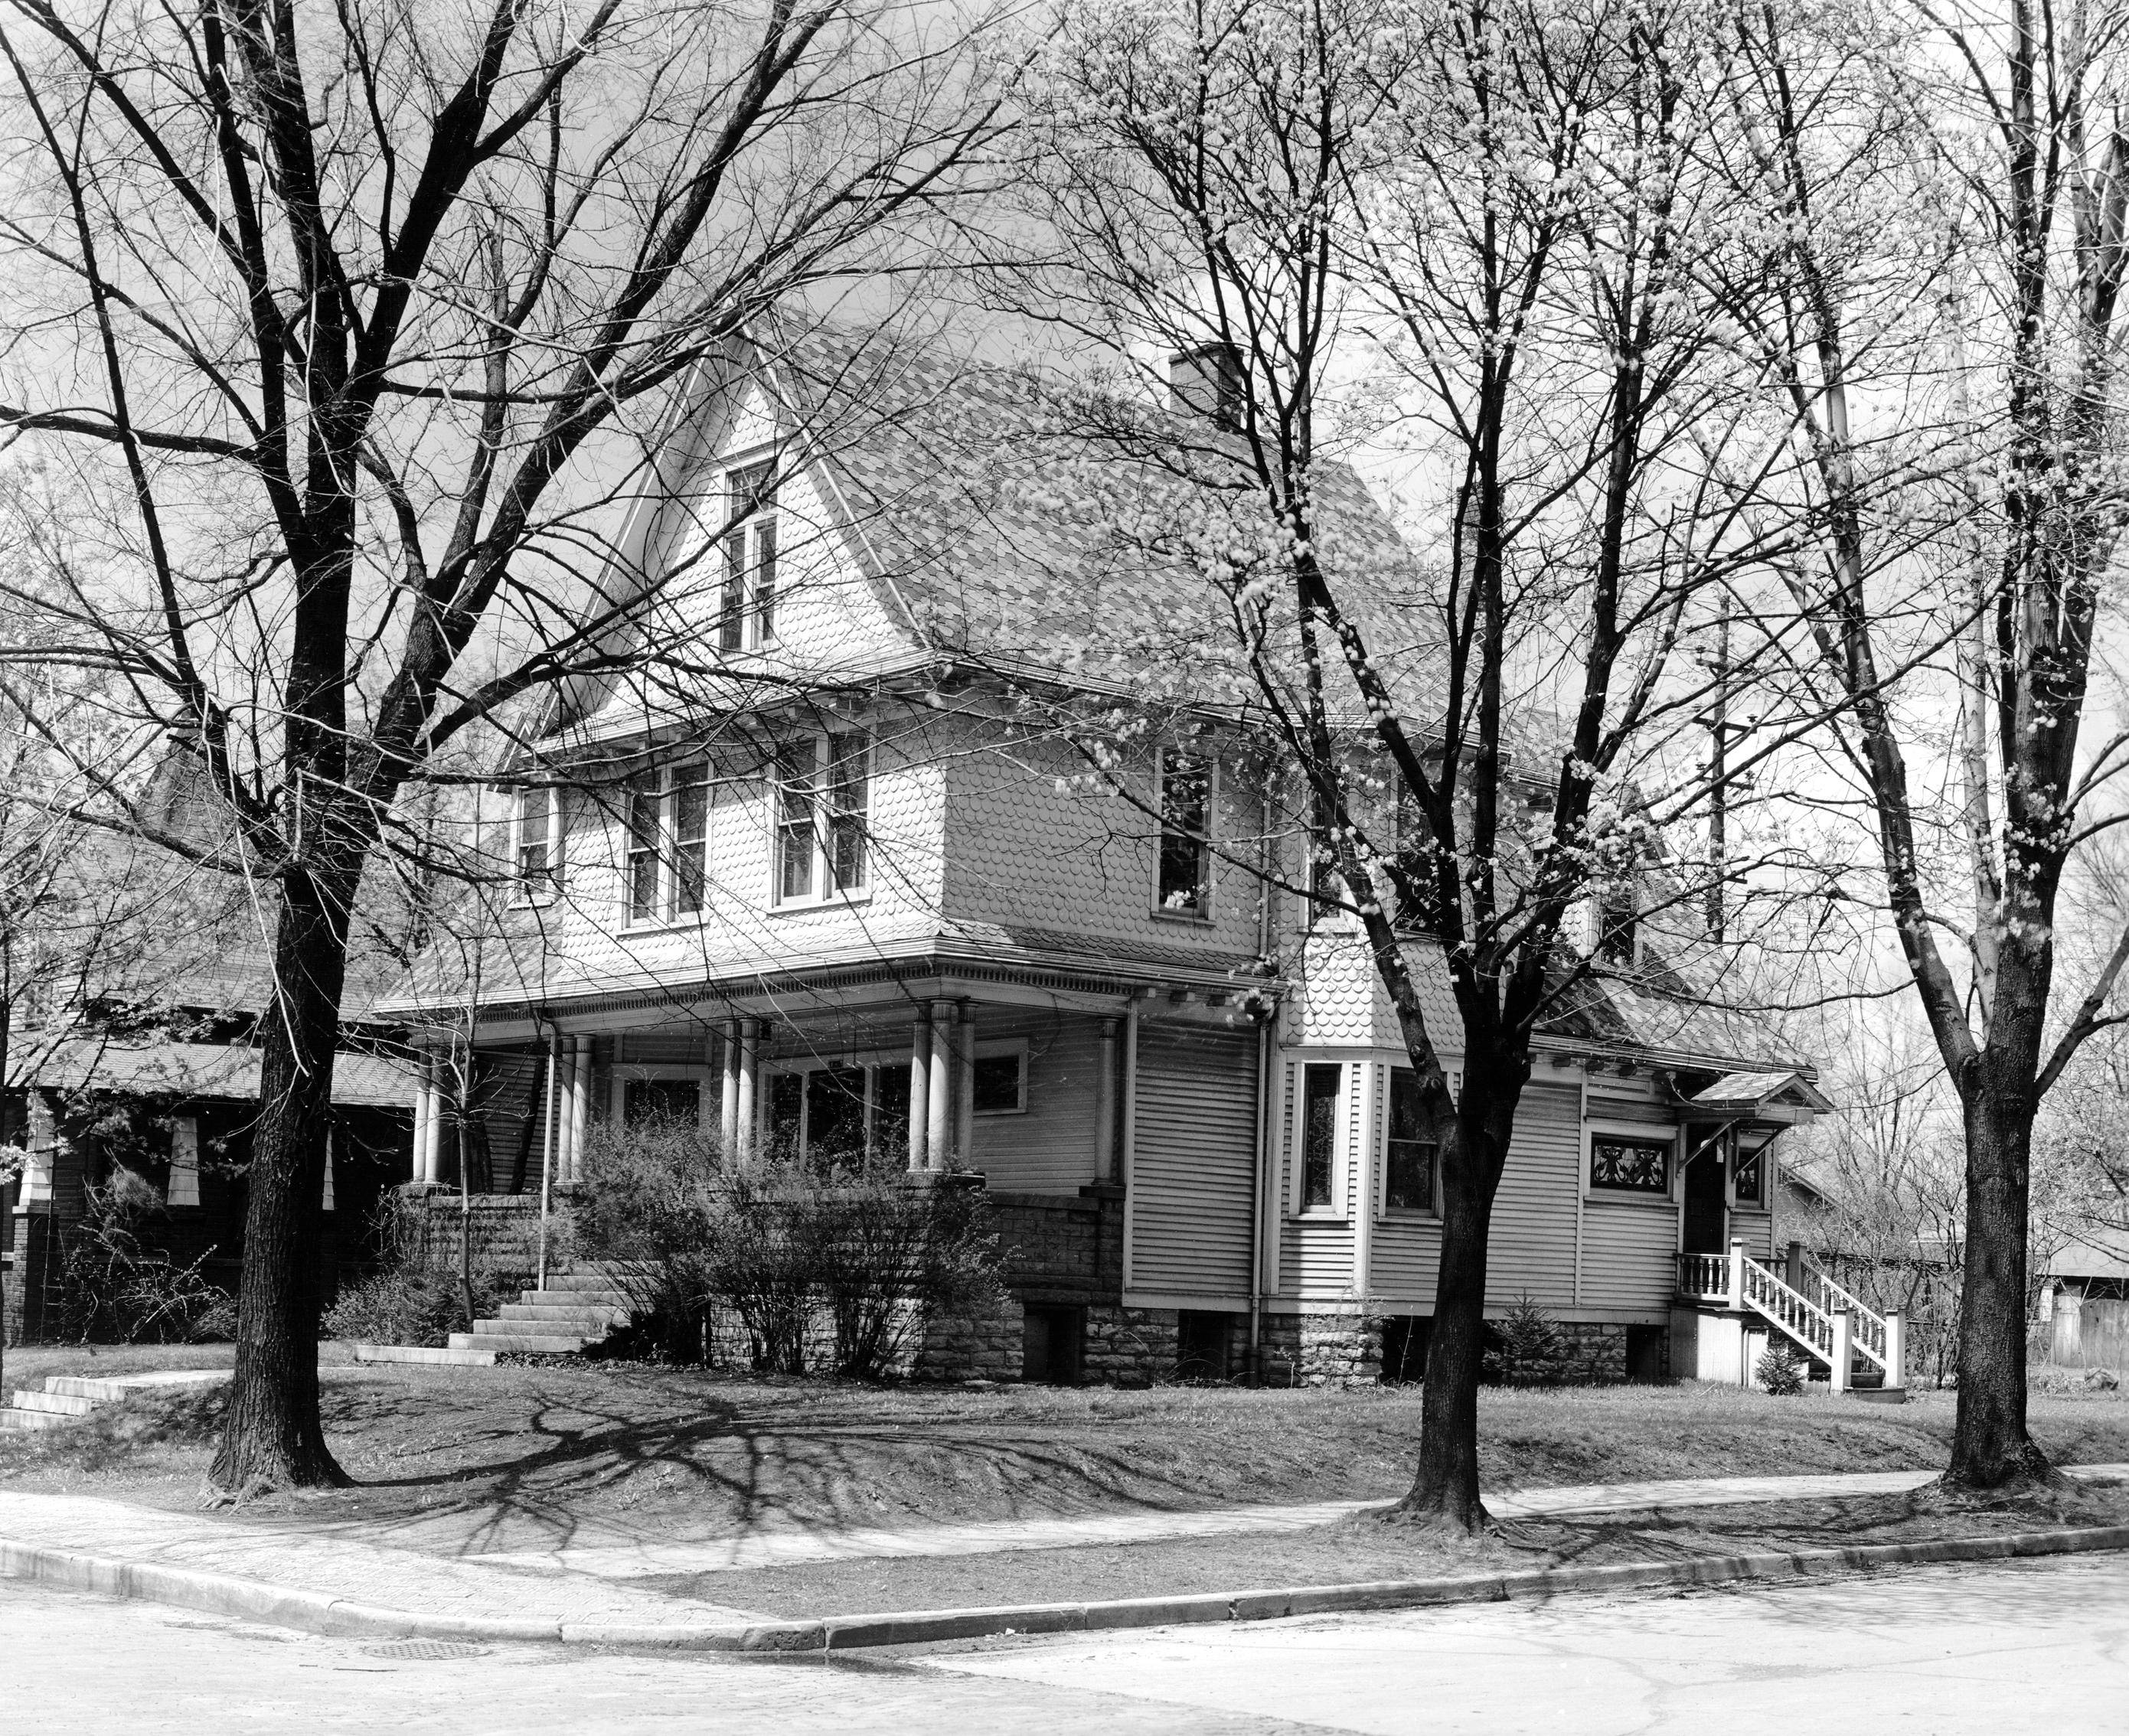 Wendell Willkie's childhood home in Elwood, Indiana. Image courtesy of Indiana Memory.